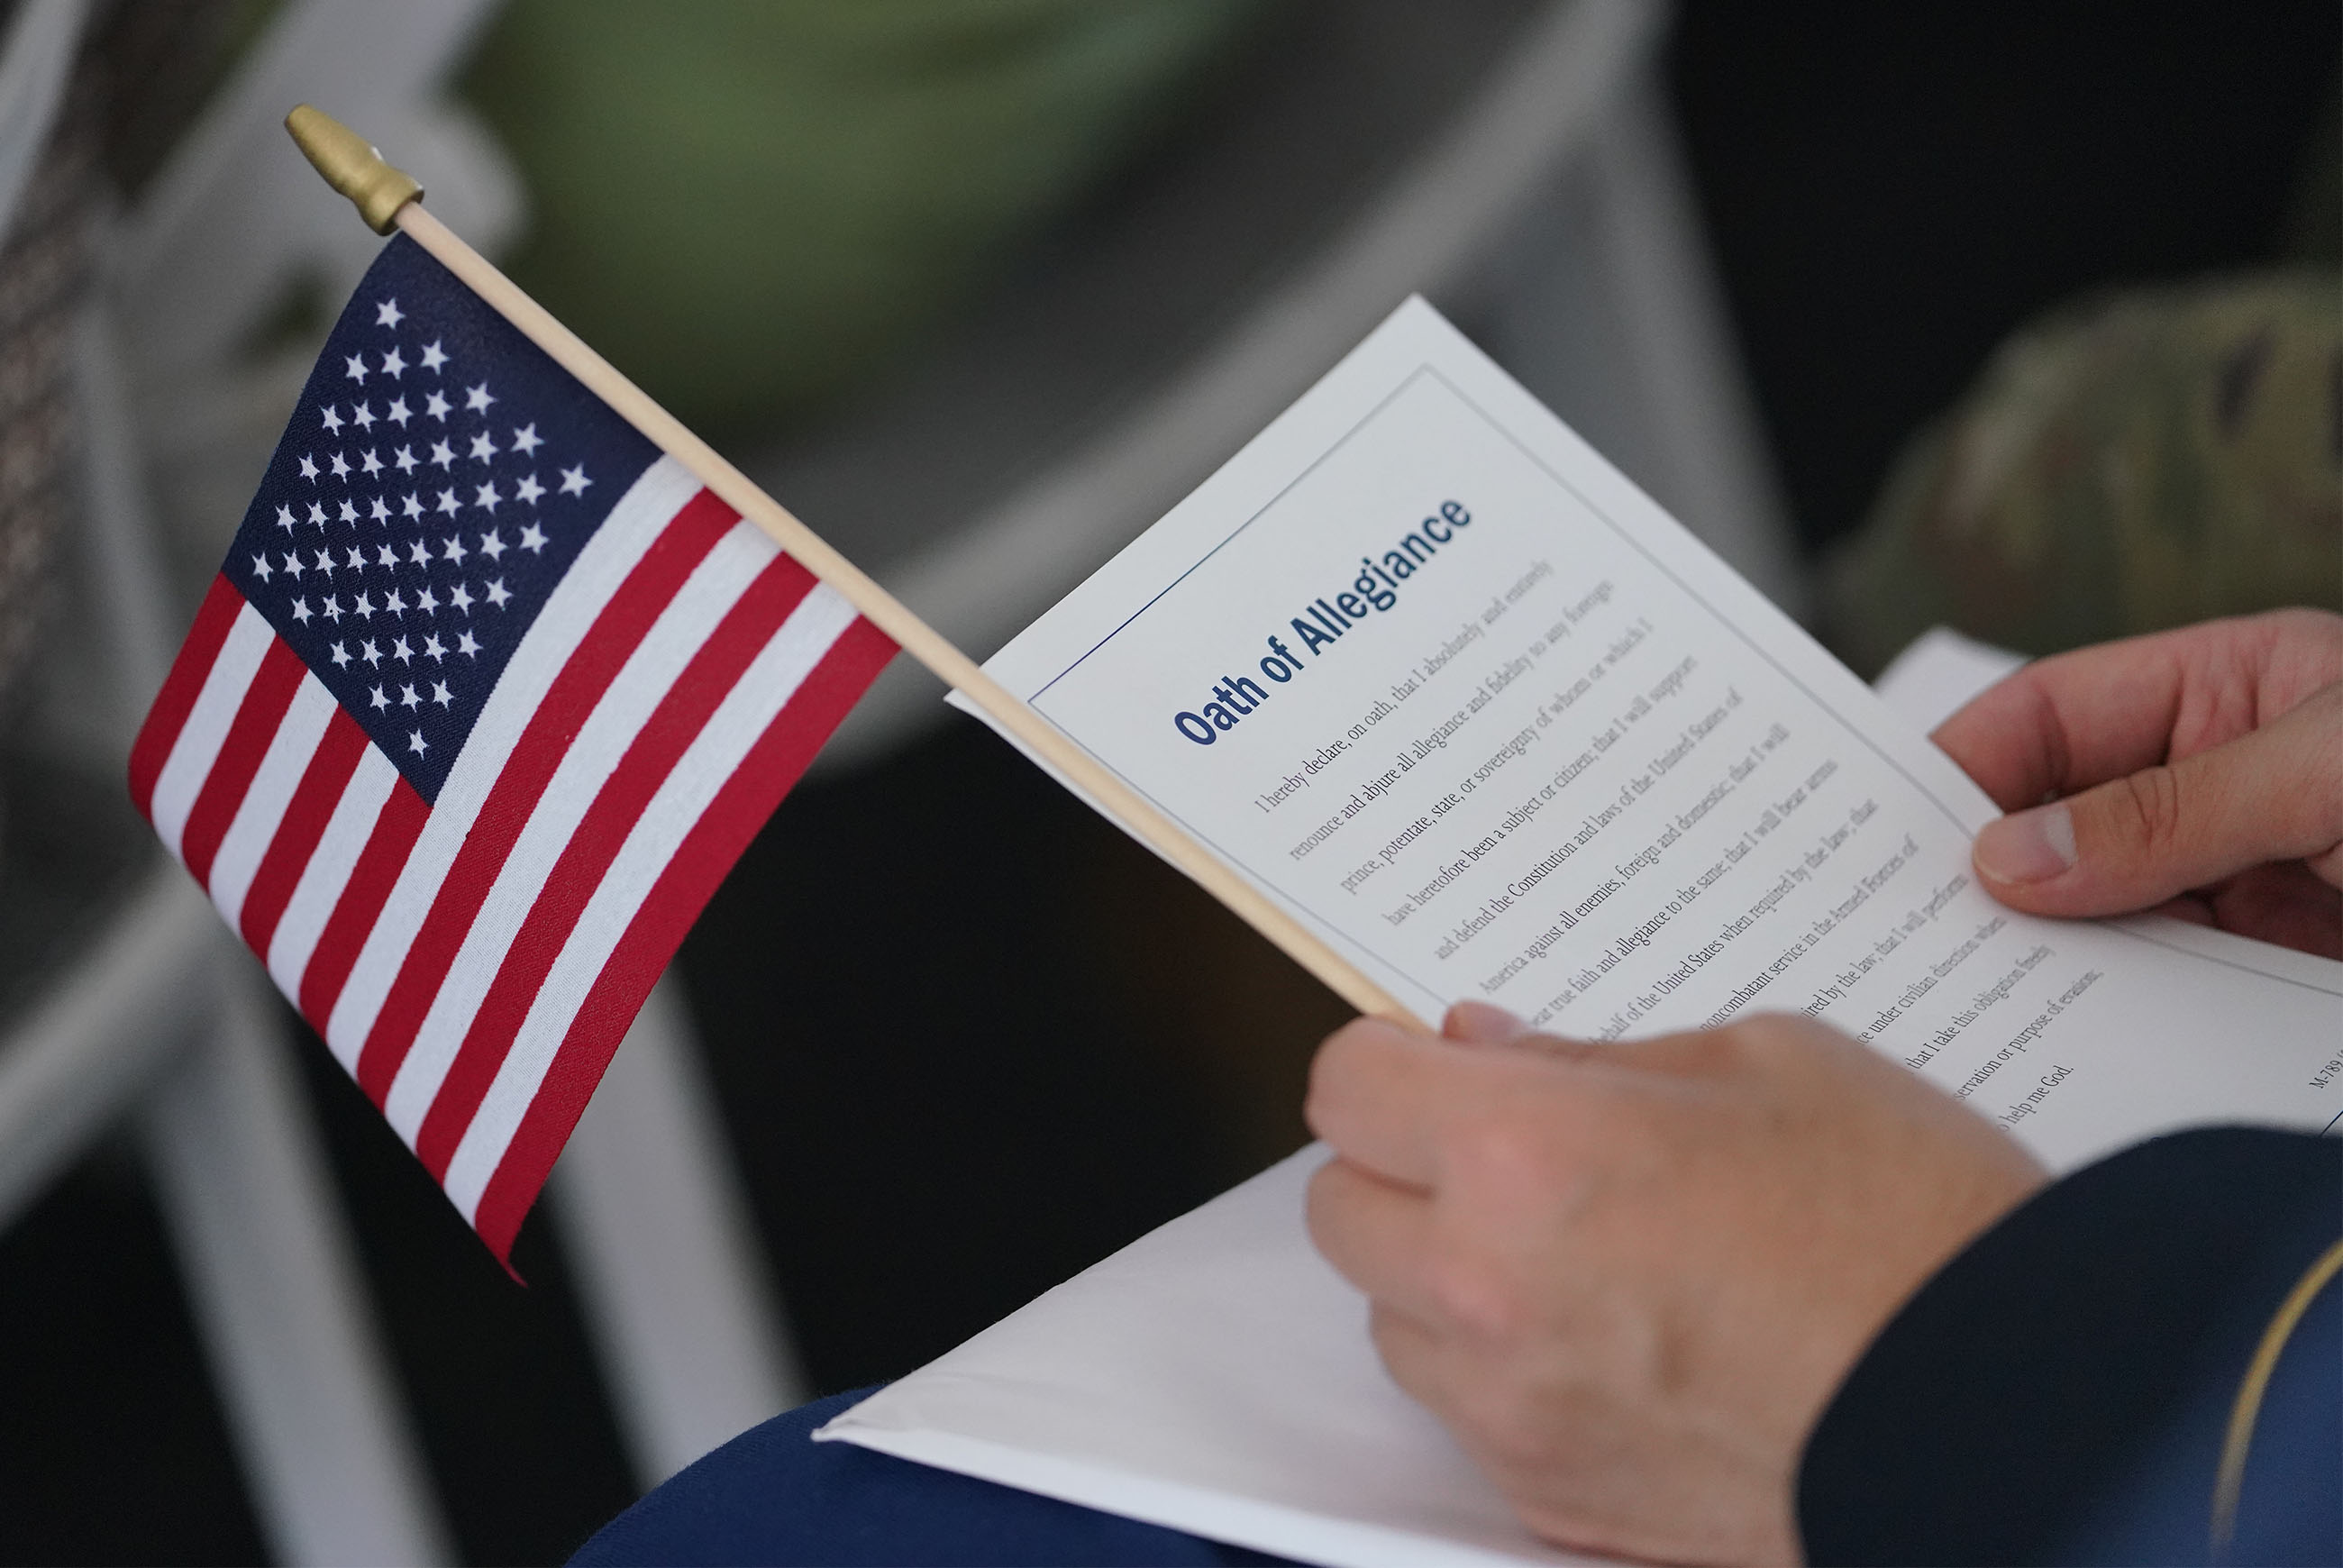 <p>Before earning the right to complete the naturalization process, immigrants had to pass English and U.S. civics tests. As a final step Thursday, they recited the Oath of Allegiance, which is more elaborate than the Pledge of Allegiance sometimes recited by Americans.</p>